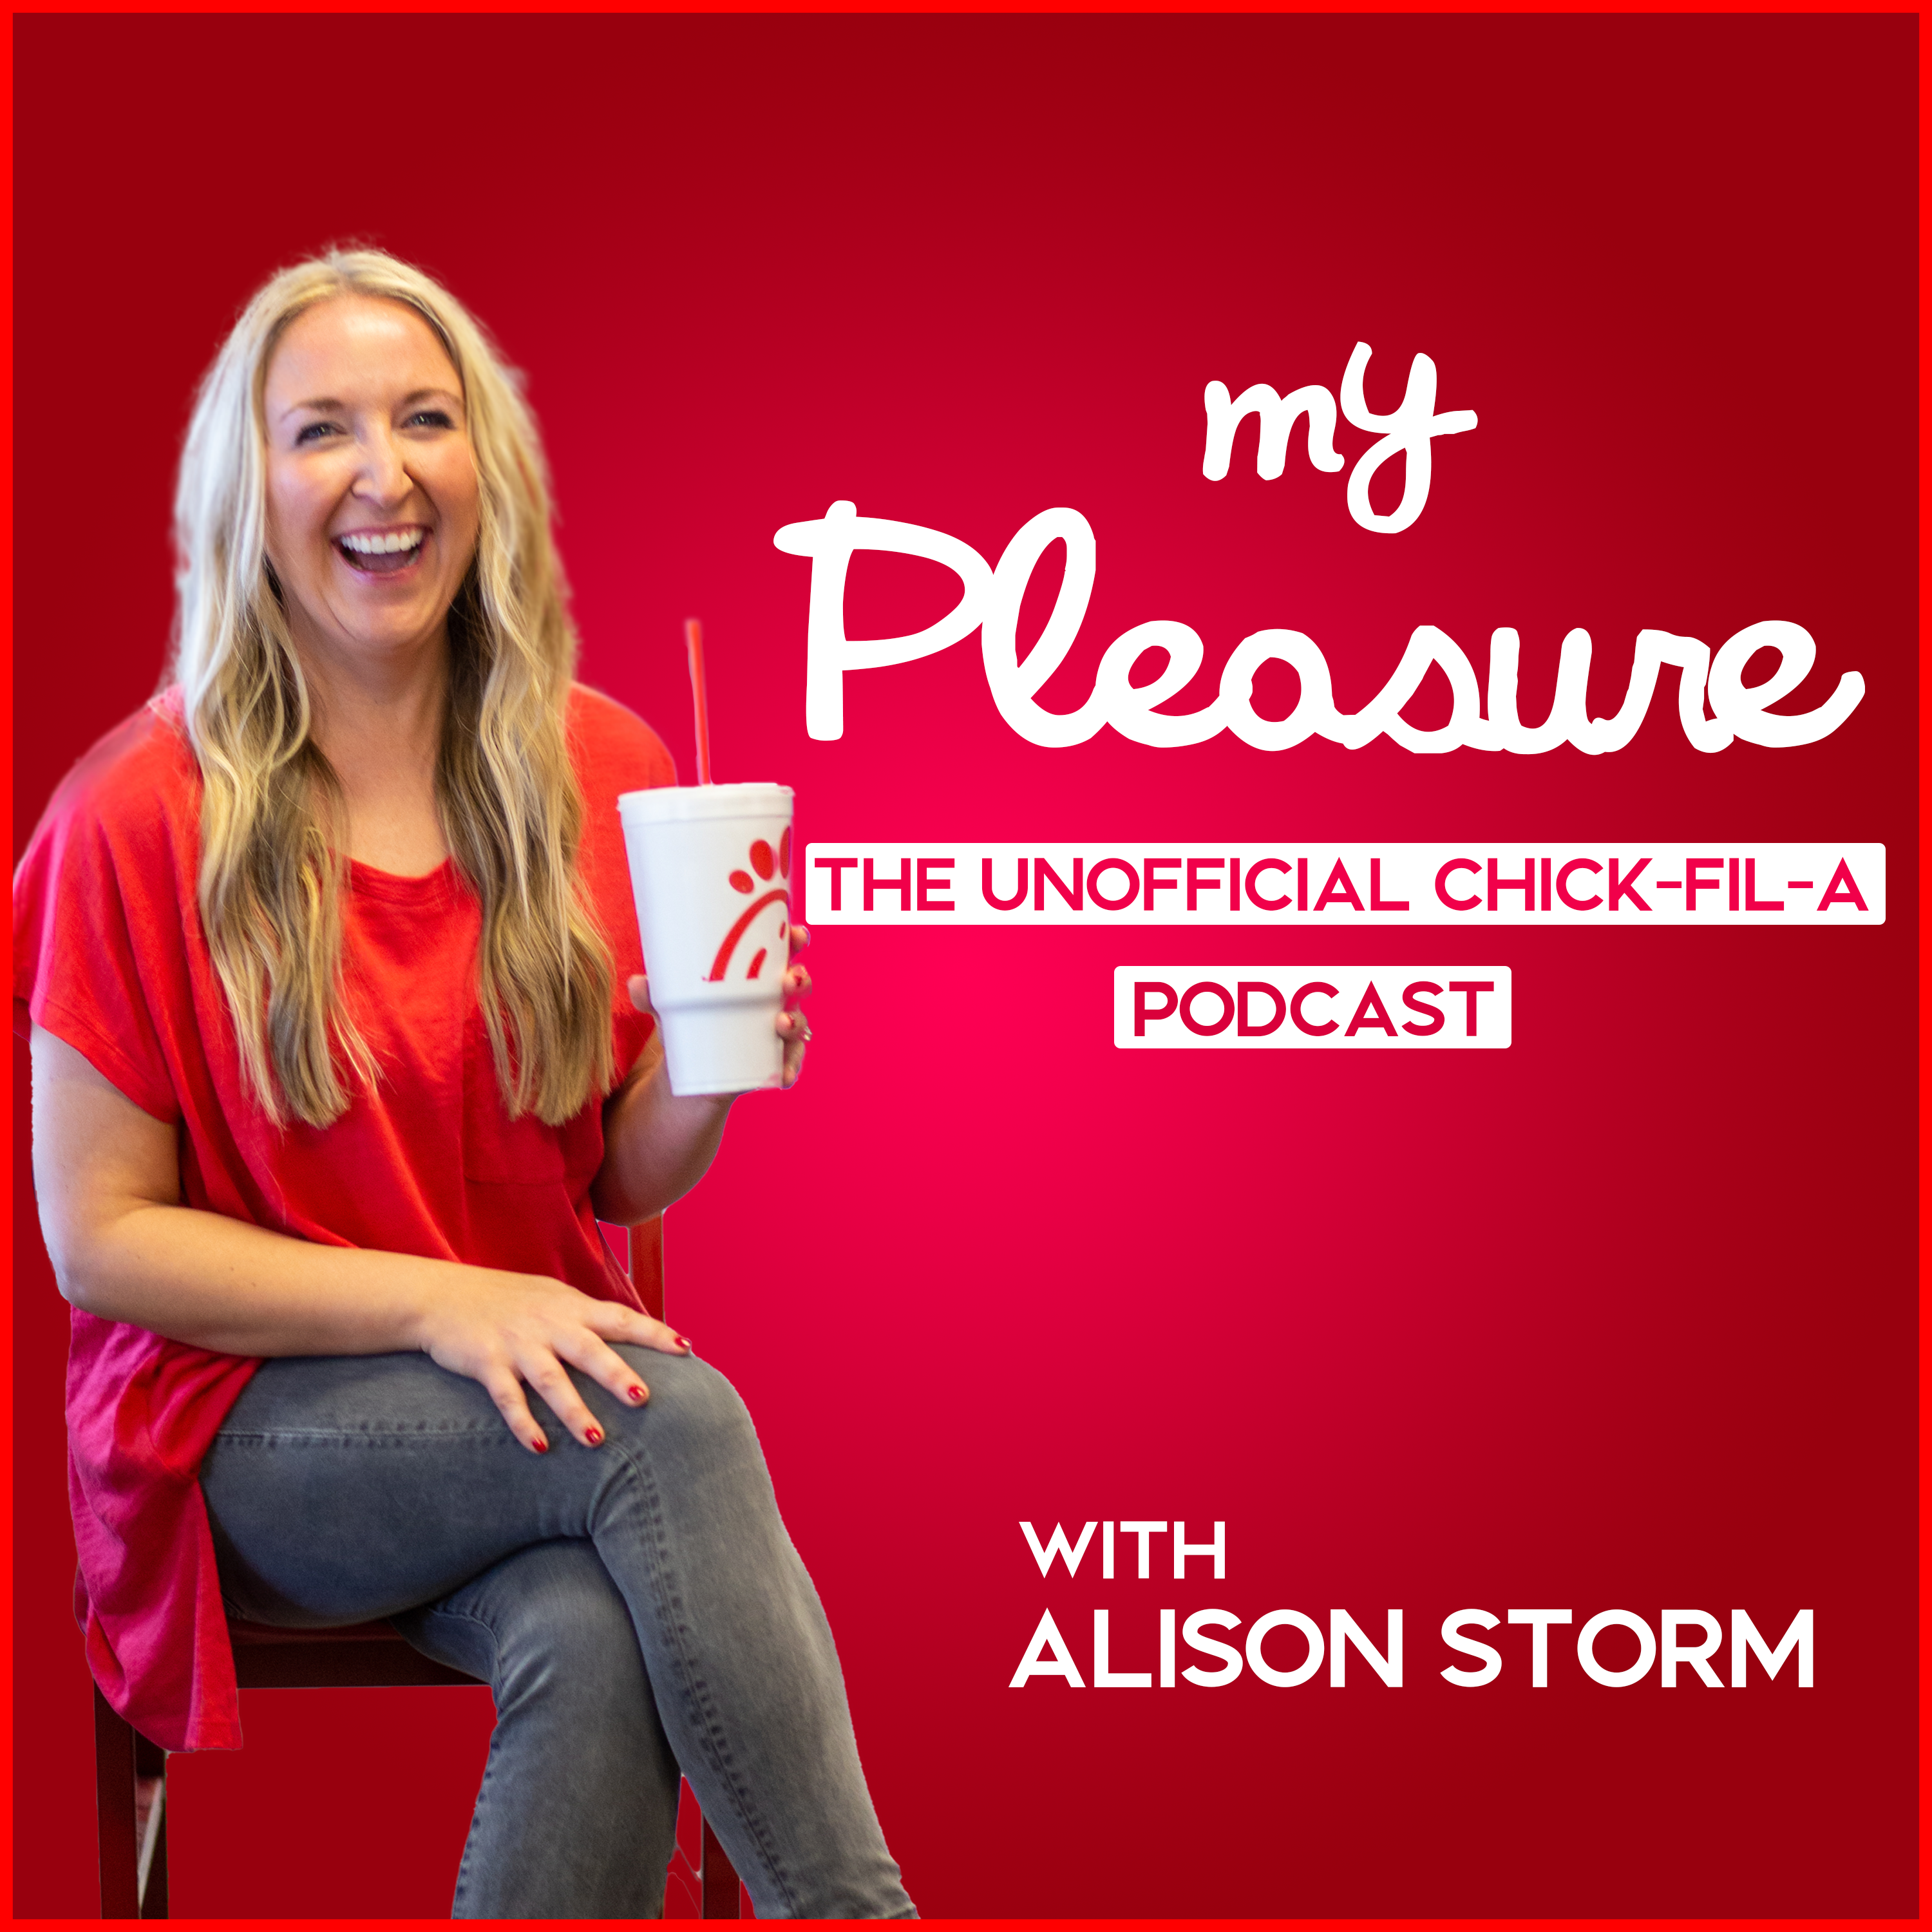 My Pleasure: The Unofficial Chick-fil-A Podcast show art